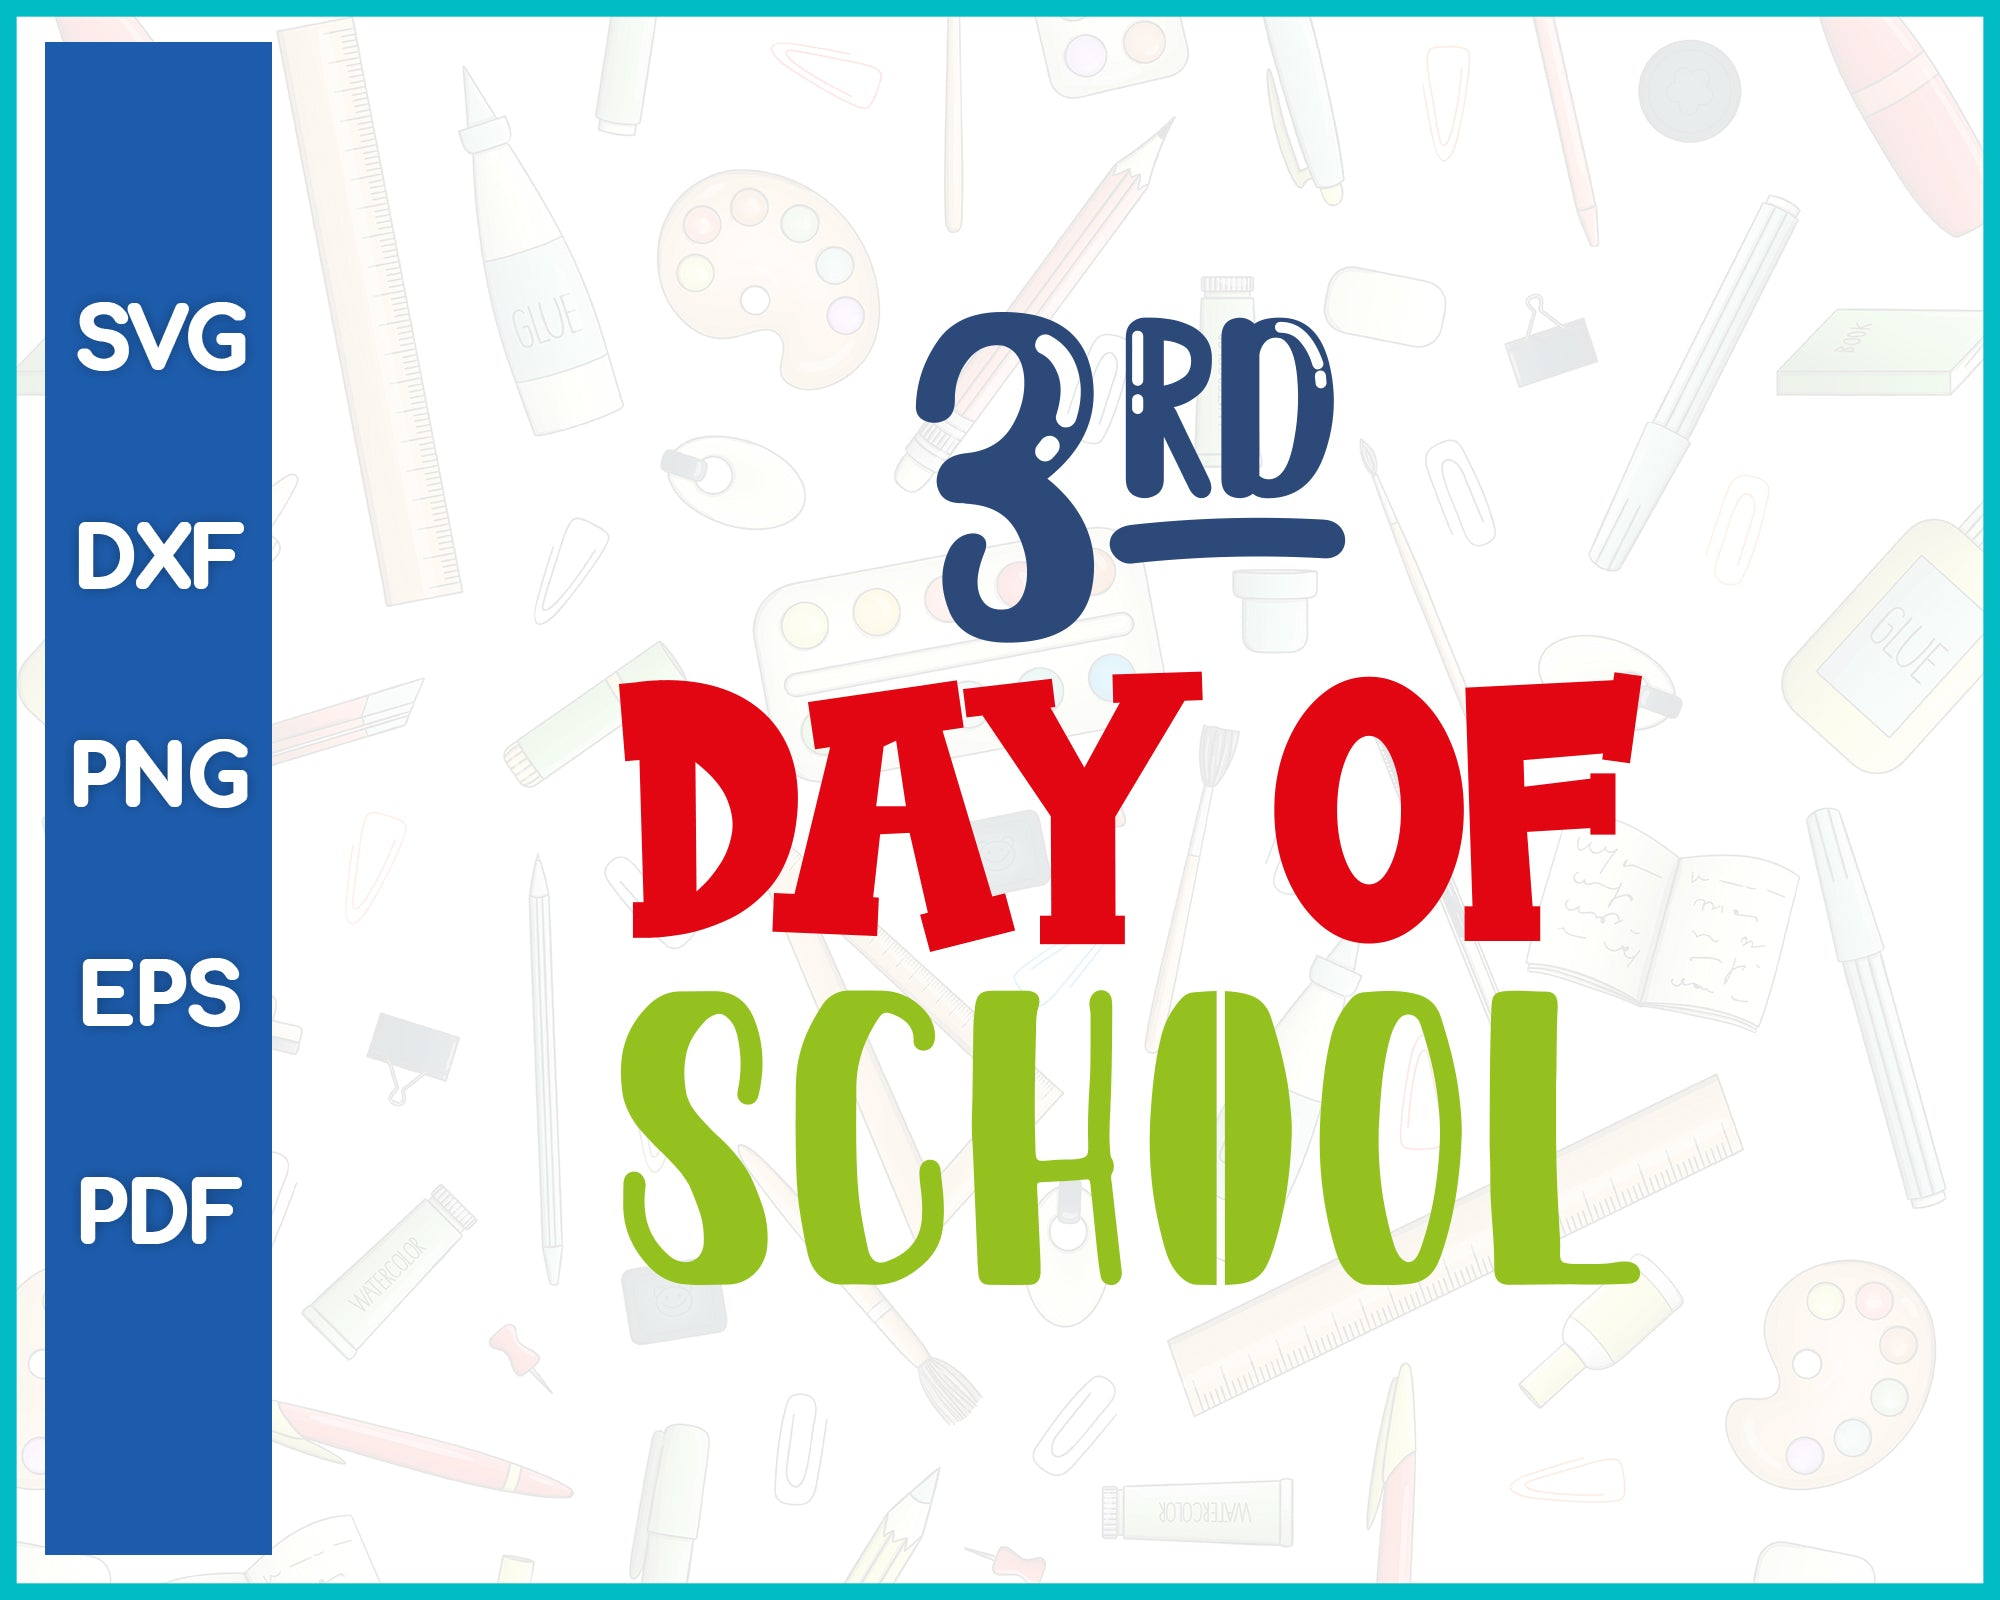 3rd Day Of School Teacher Cut File For Cricut svg, dxf, png, eps, pdf Silhouette Printable Files